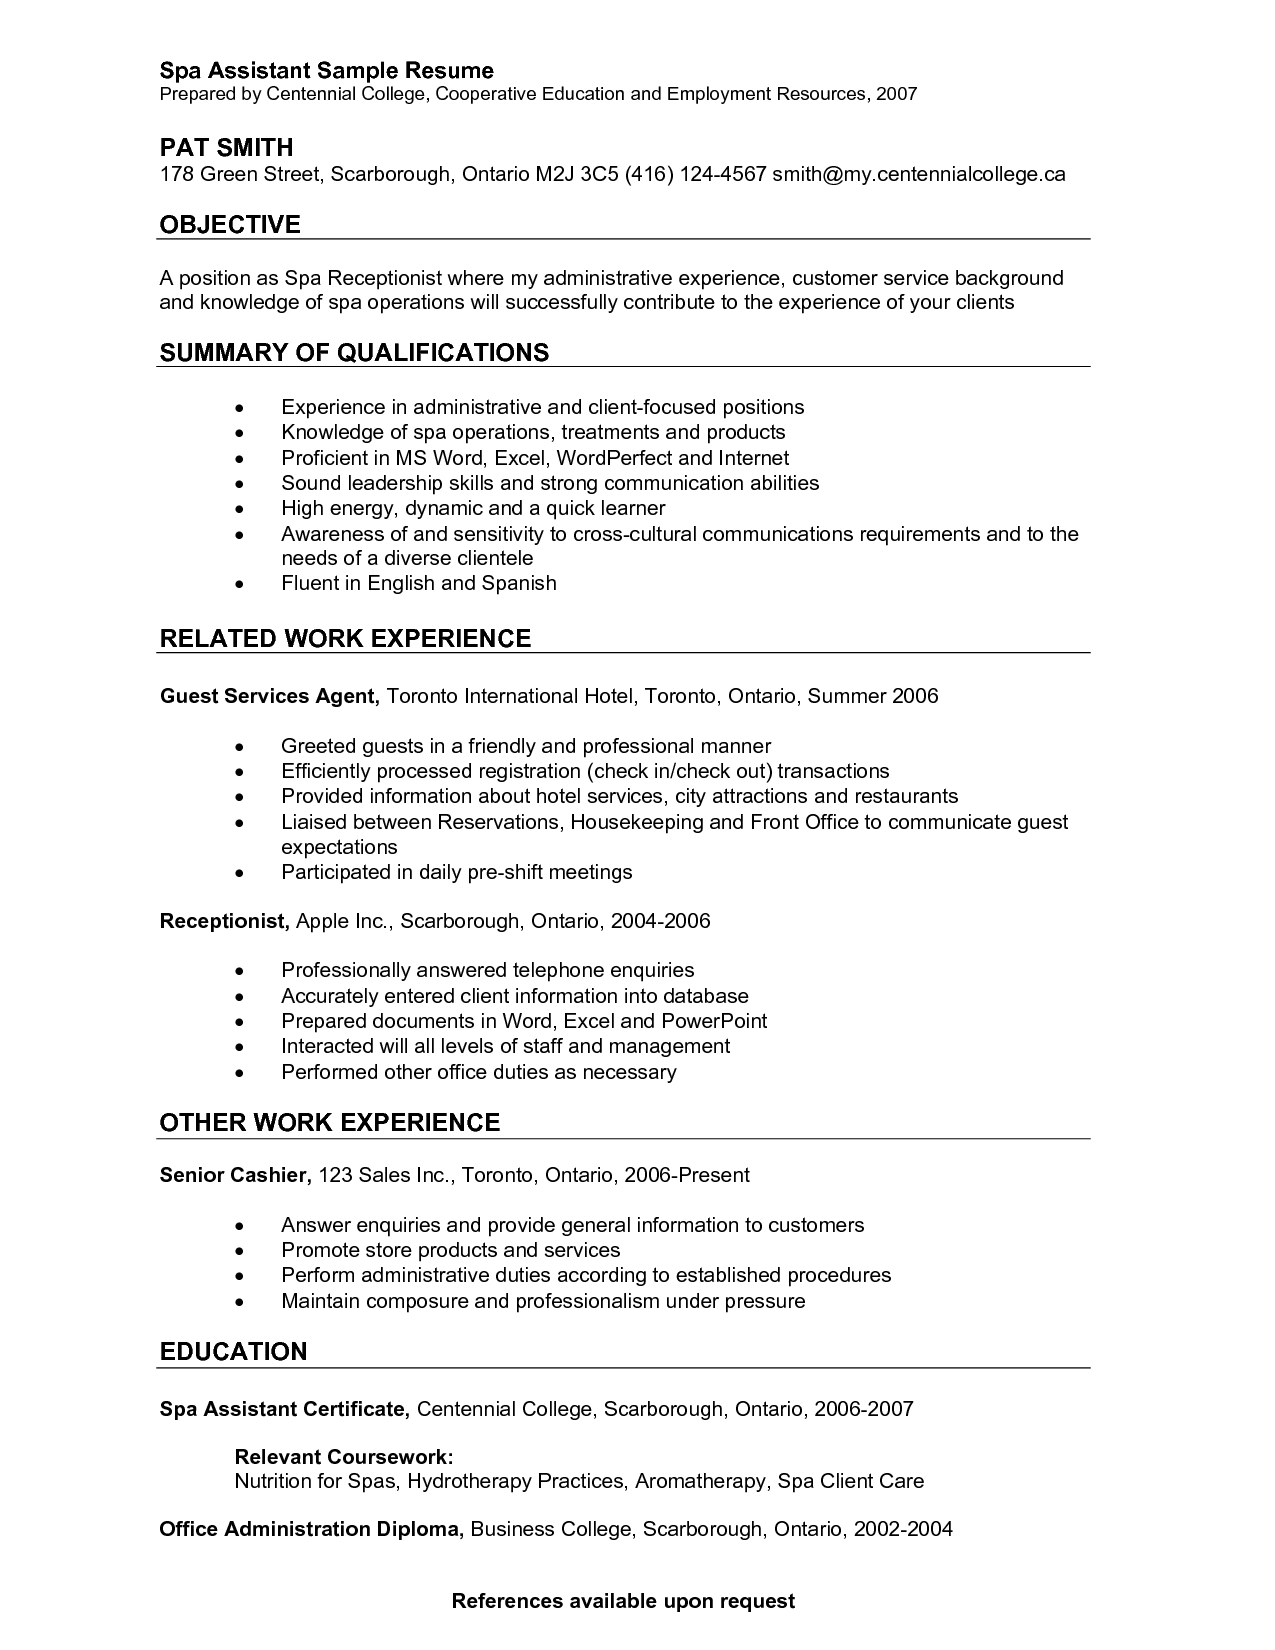 Receptionist Skills Resume Medical Receptionist Resume Objective Samples  Resume  Pinterest